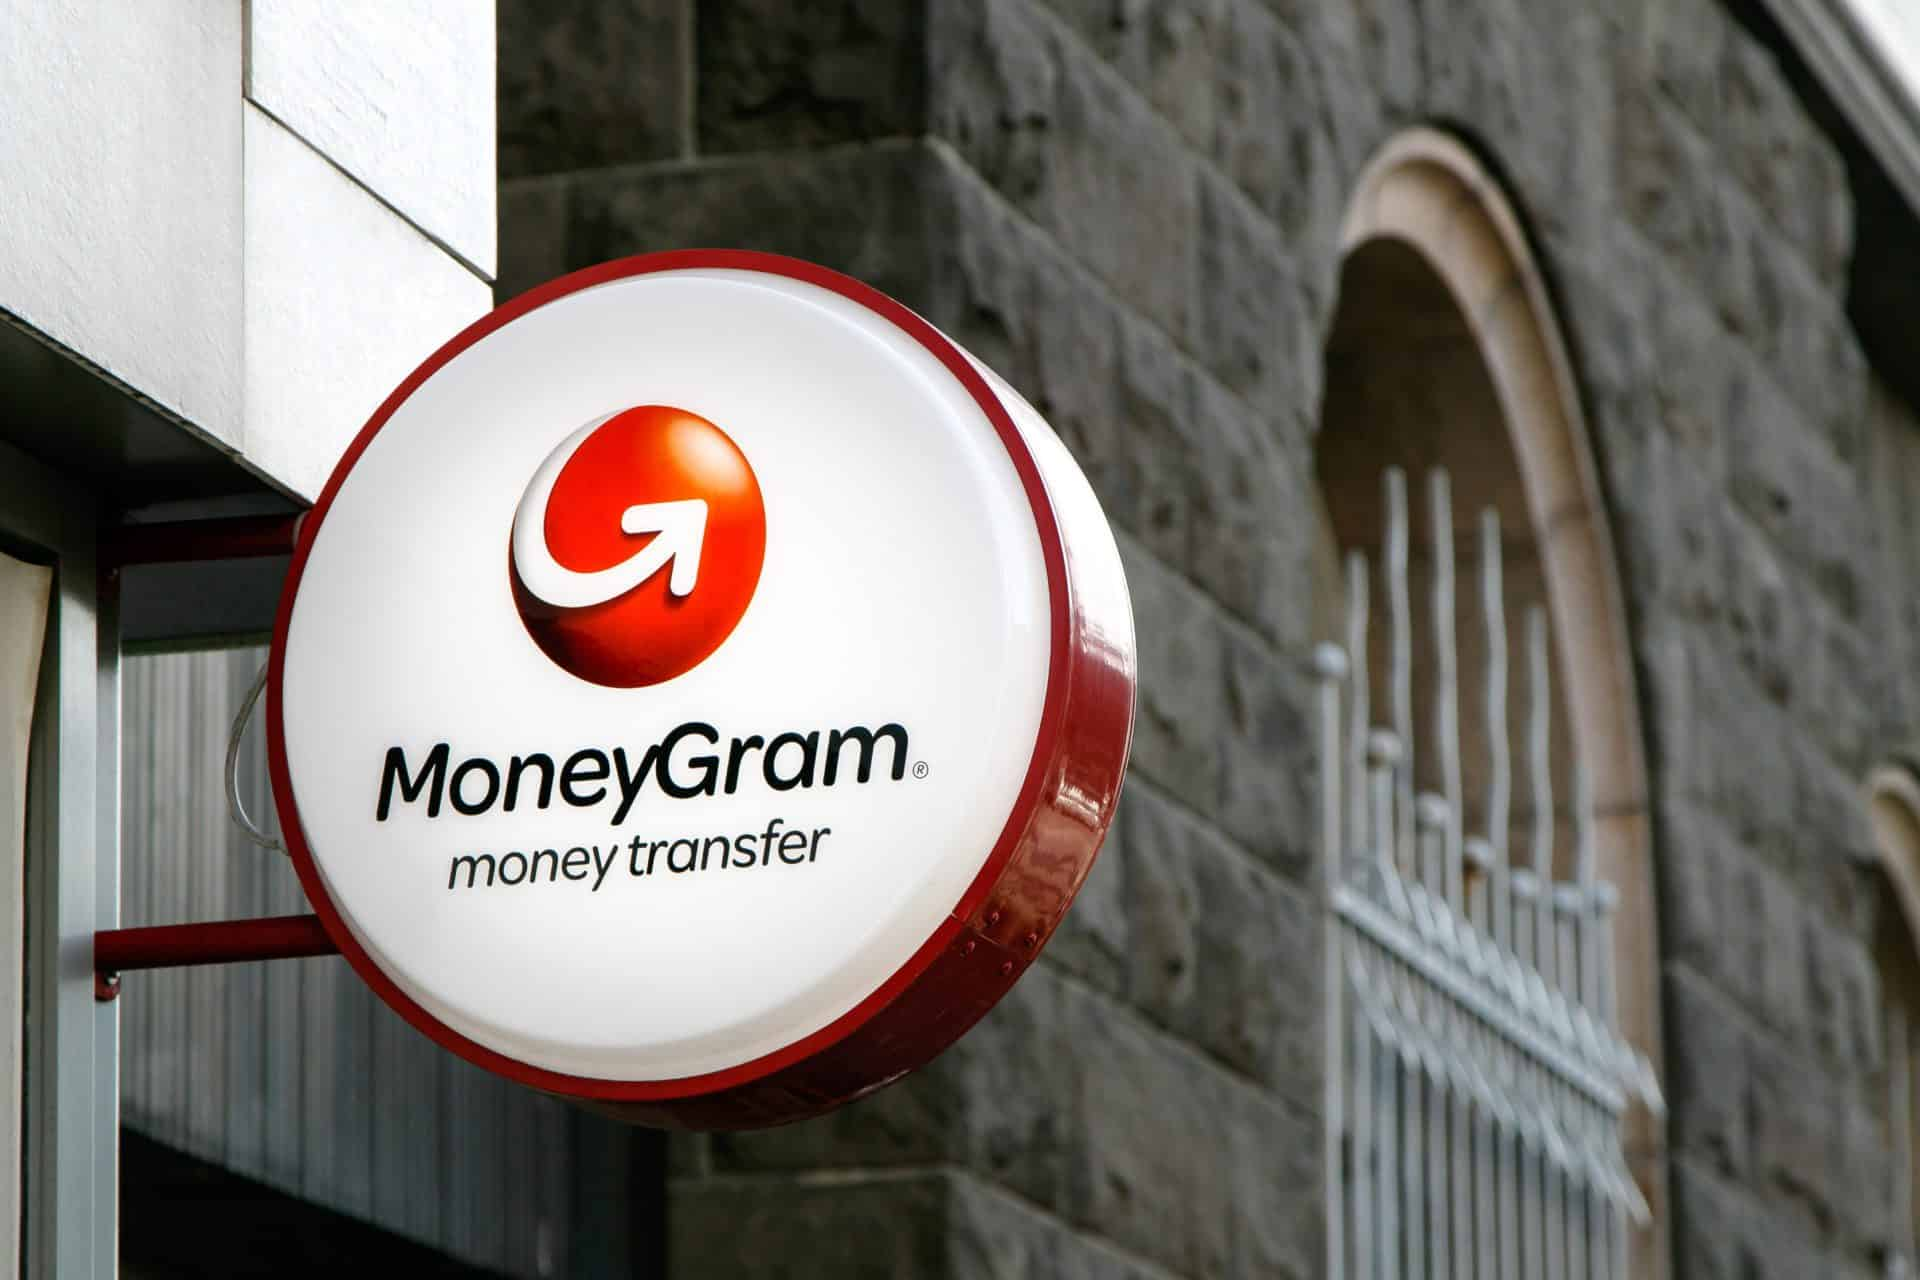 MoneyGram Announces New Home Delivery Partnership with HD Bank